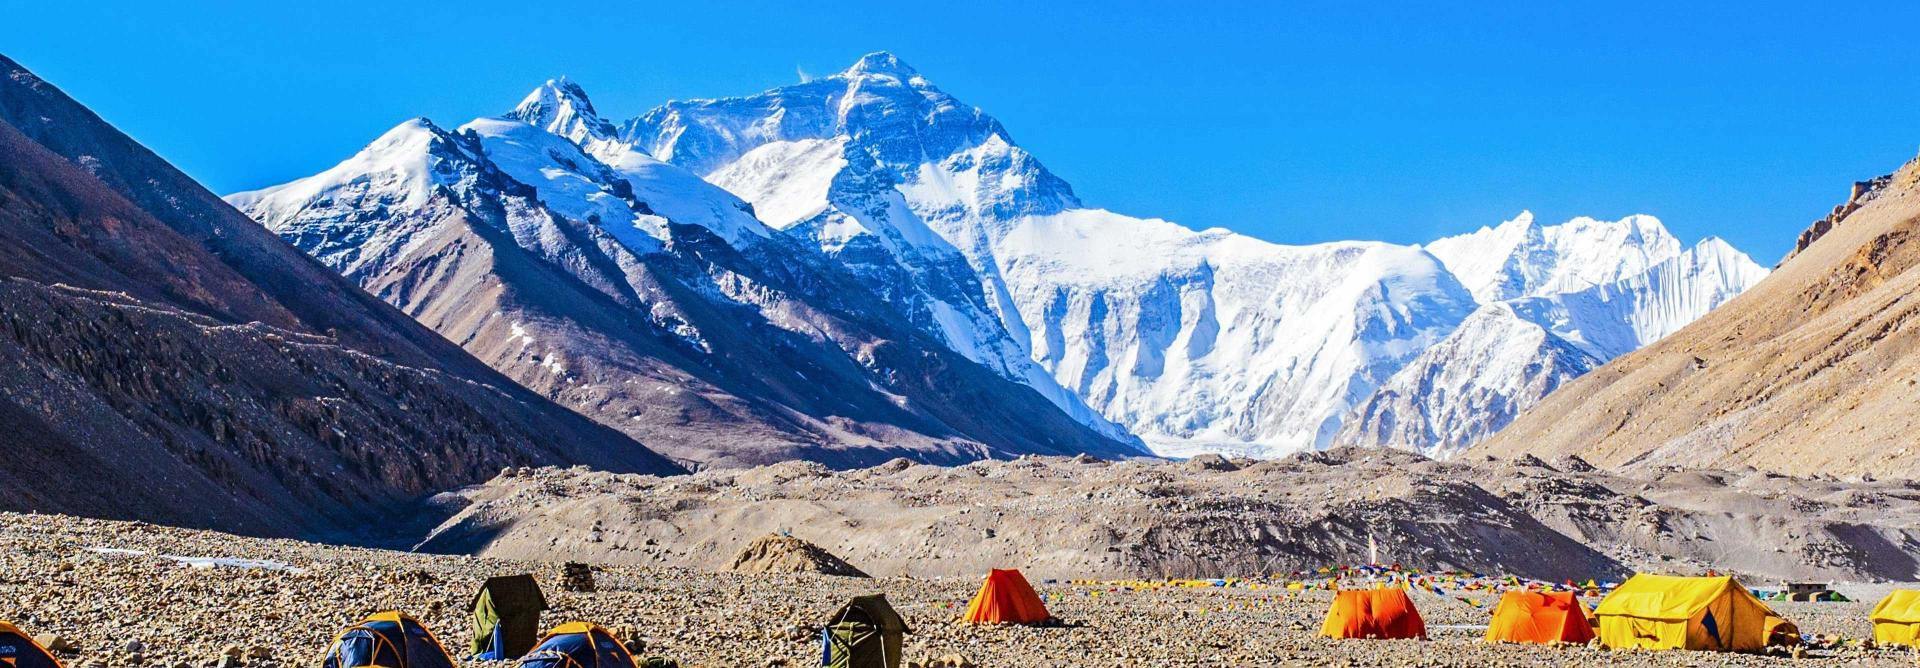 Spectrum People Fundraising Challenge to Everest base Camp